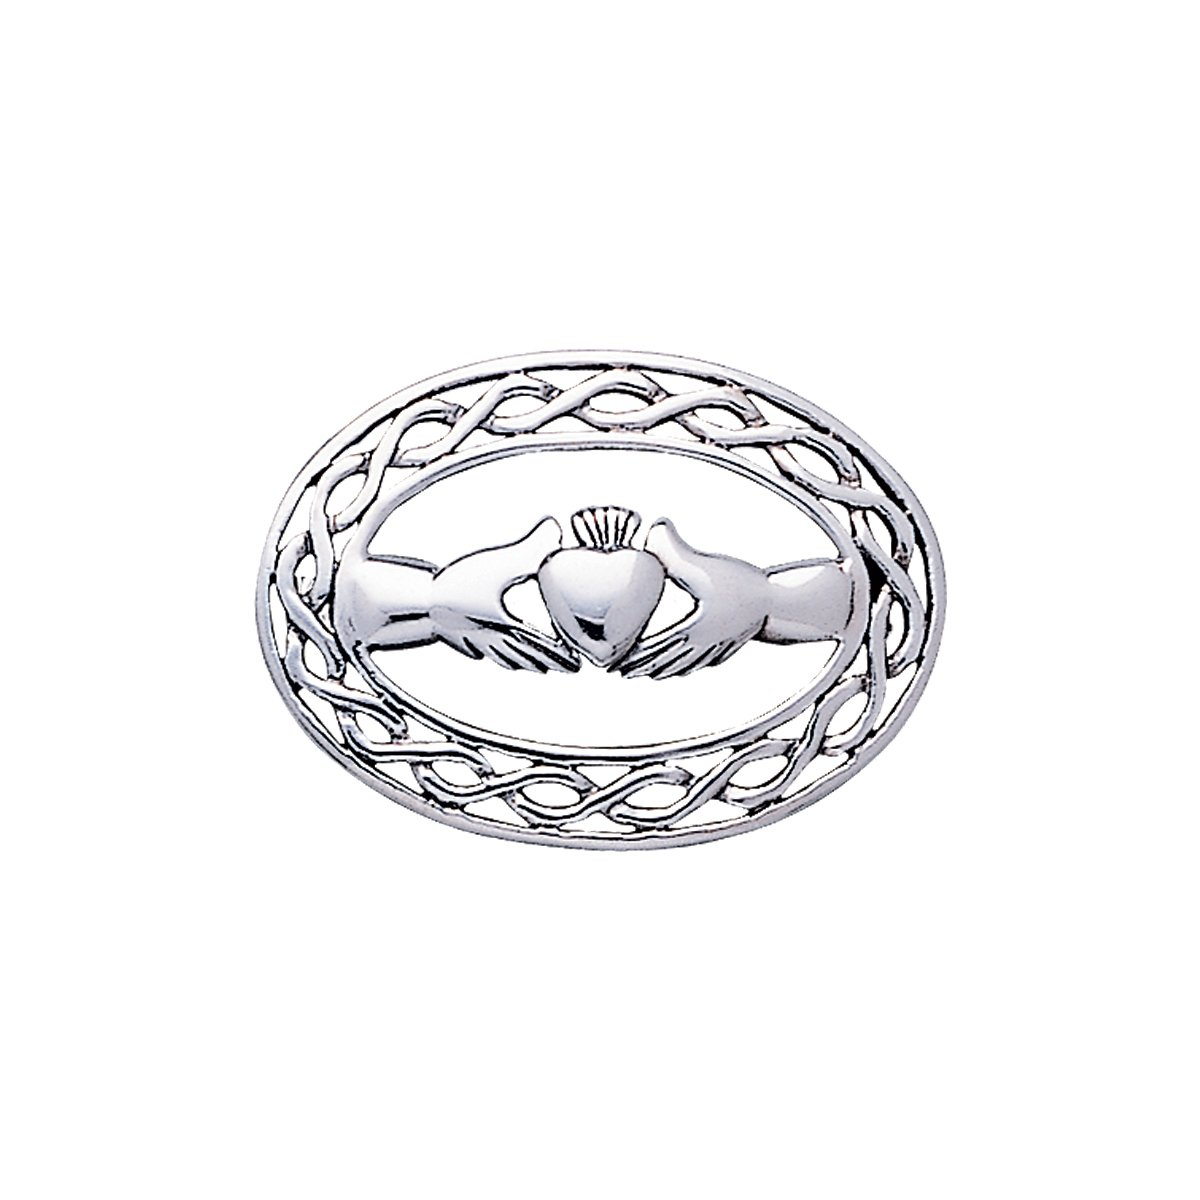 1200x1200 Jewelry Trends Sterling Silver Irish Claddagh With Celtic Knot